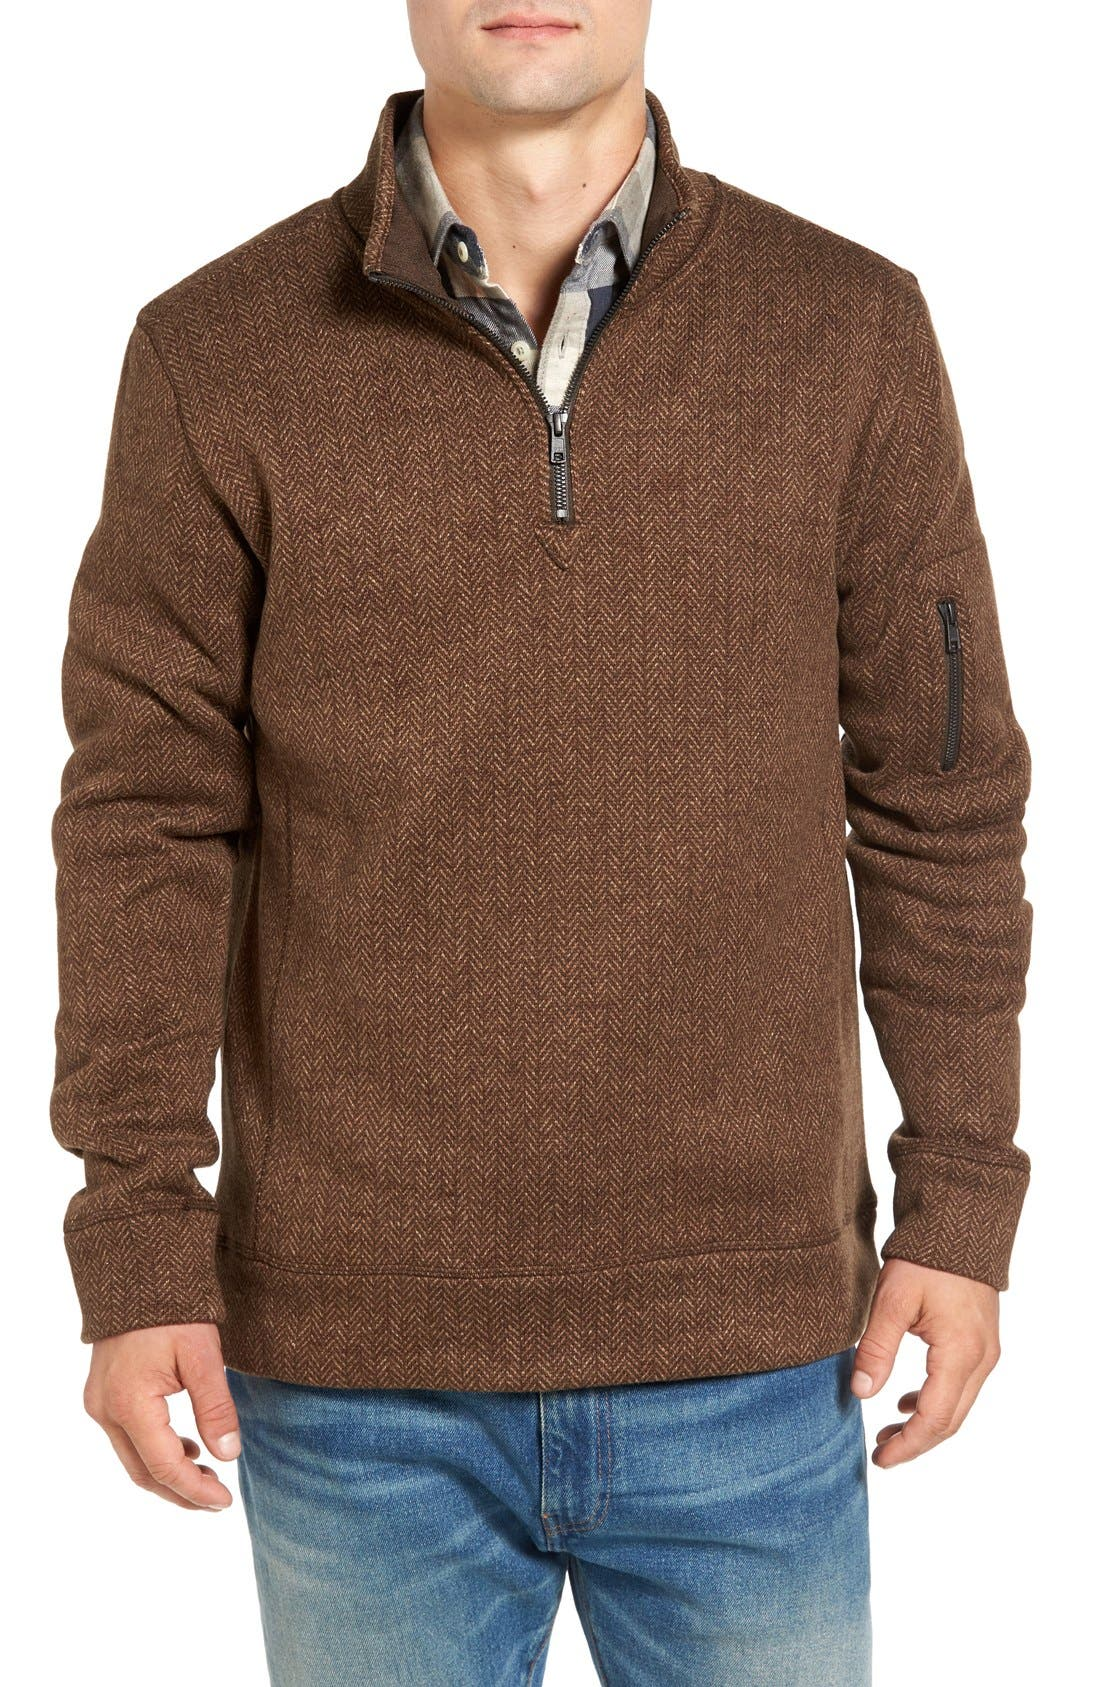 Lance Herringbone Zip Mock Neck Sweater,                             Main thumbnail 4, color,